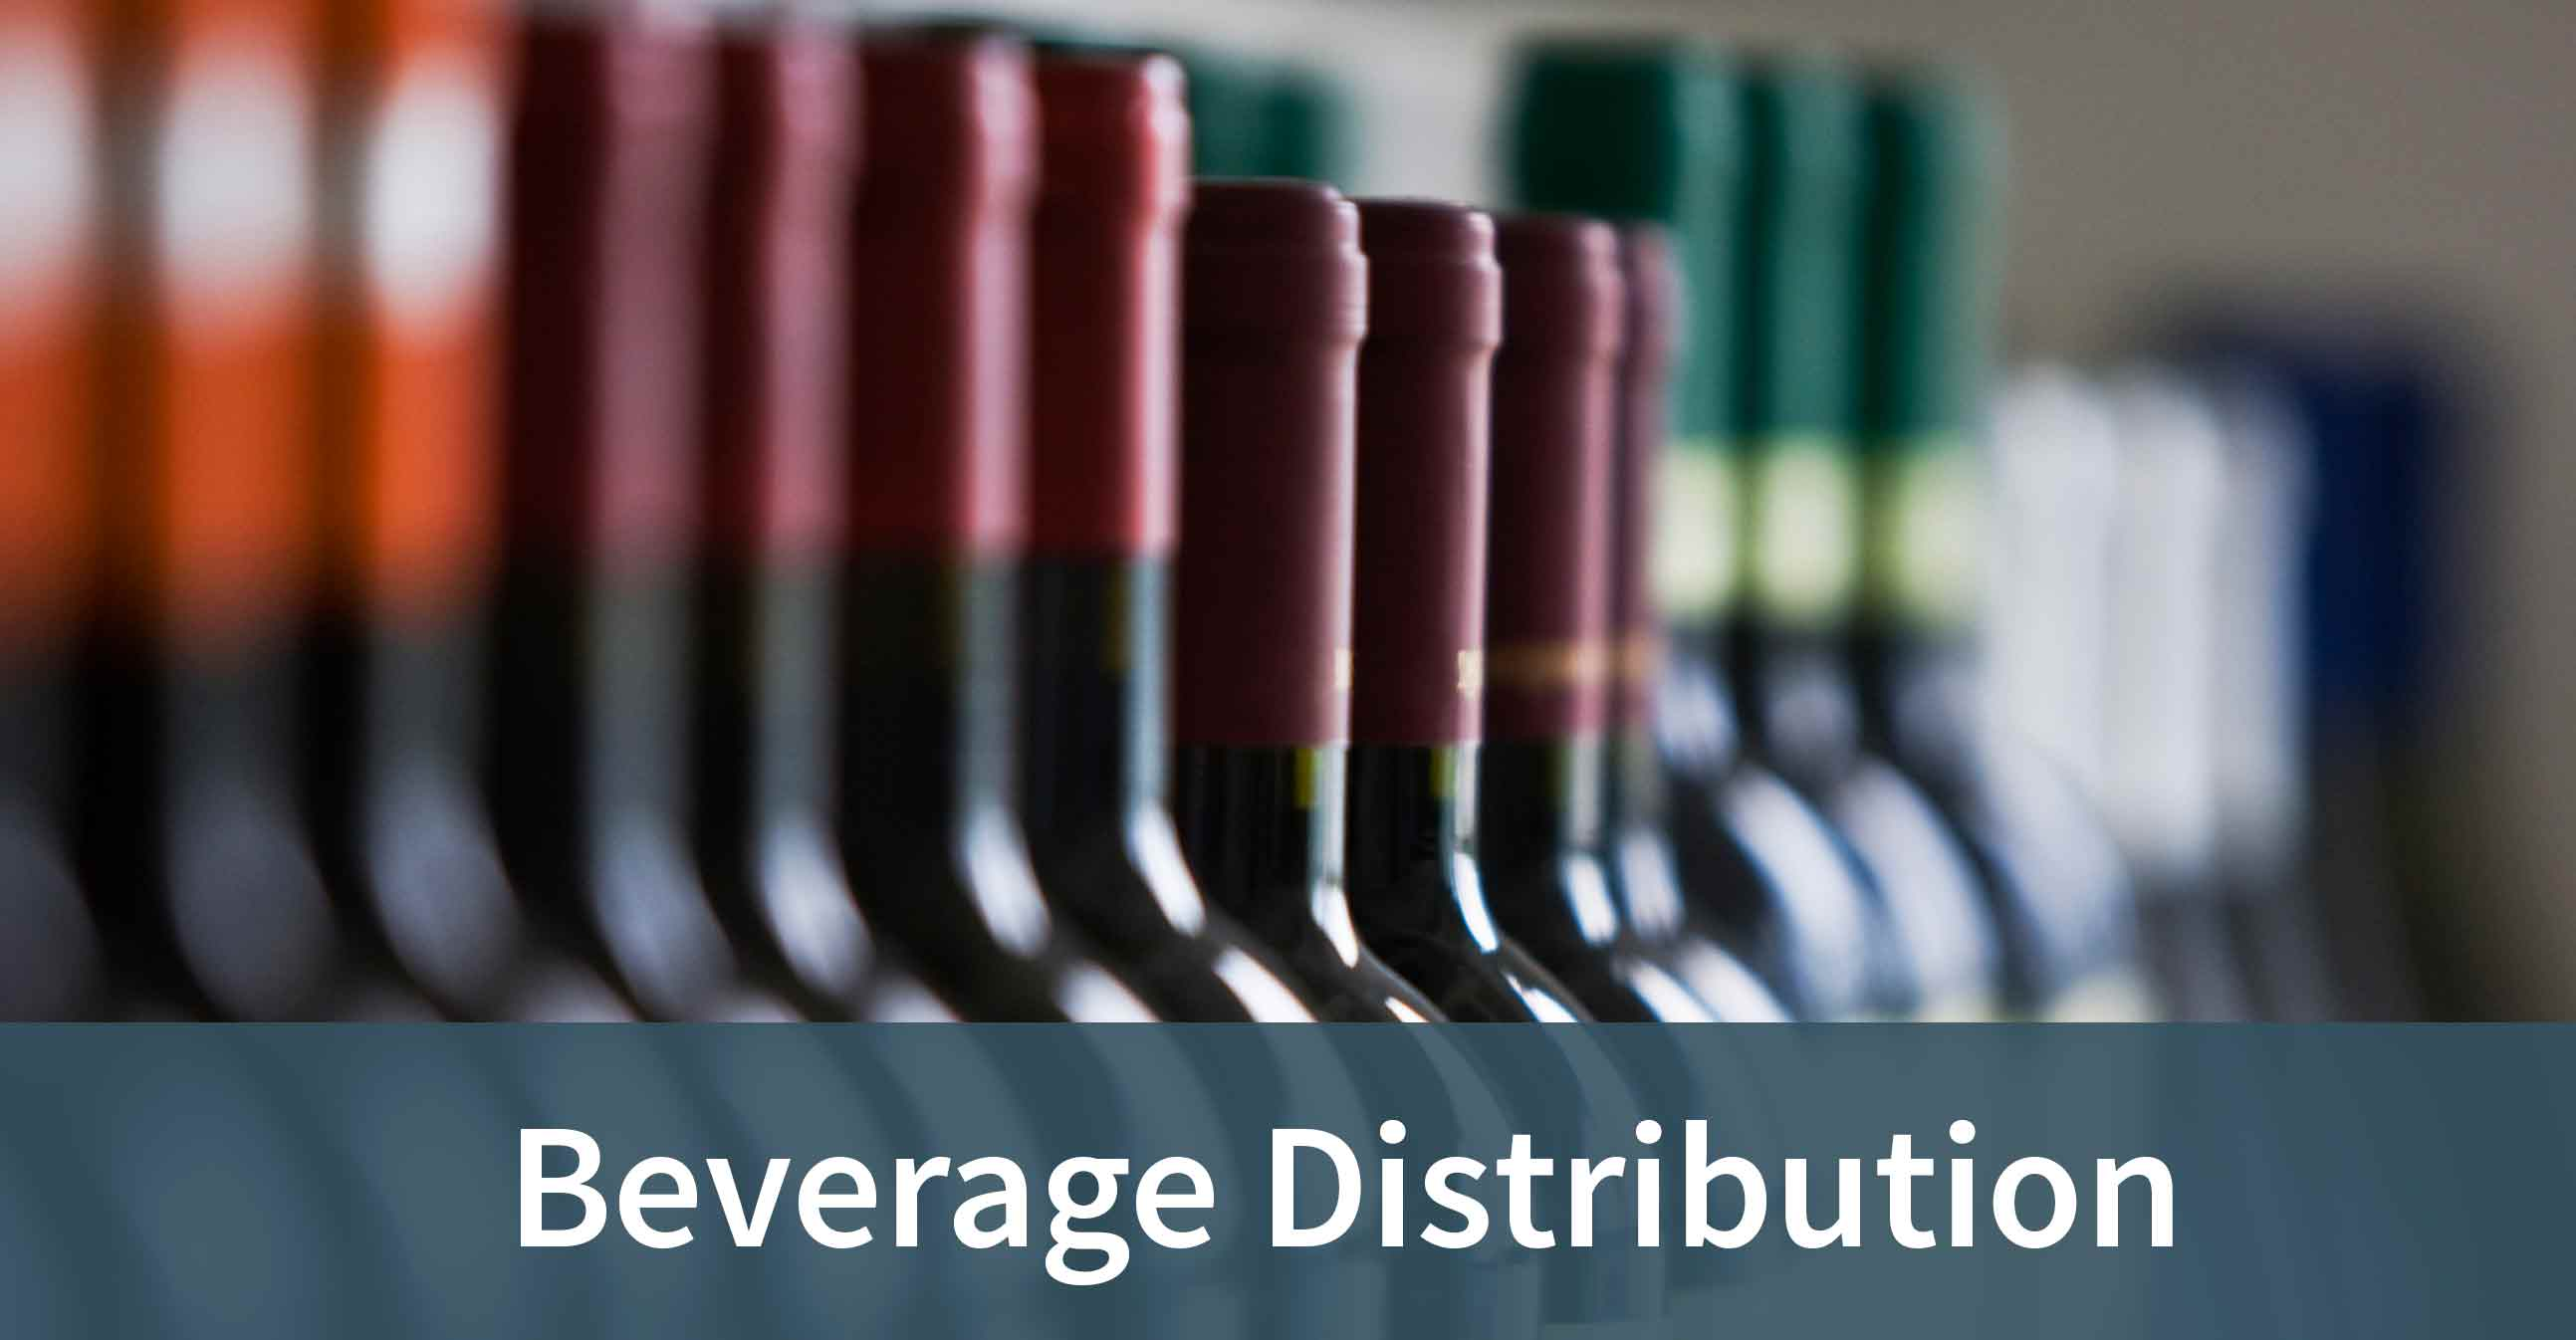 Beverage Distribution